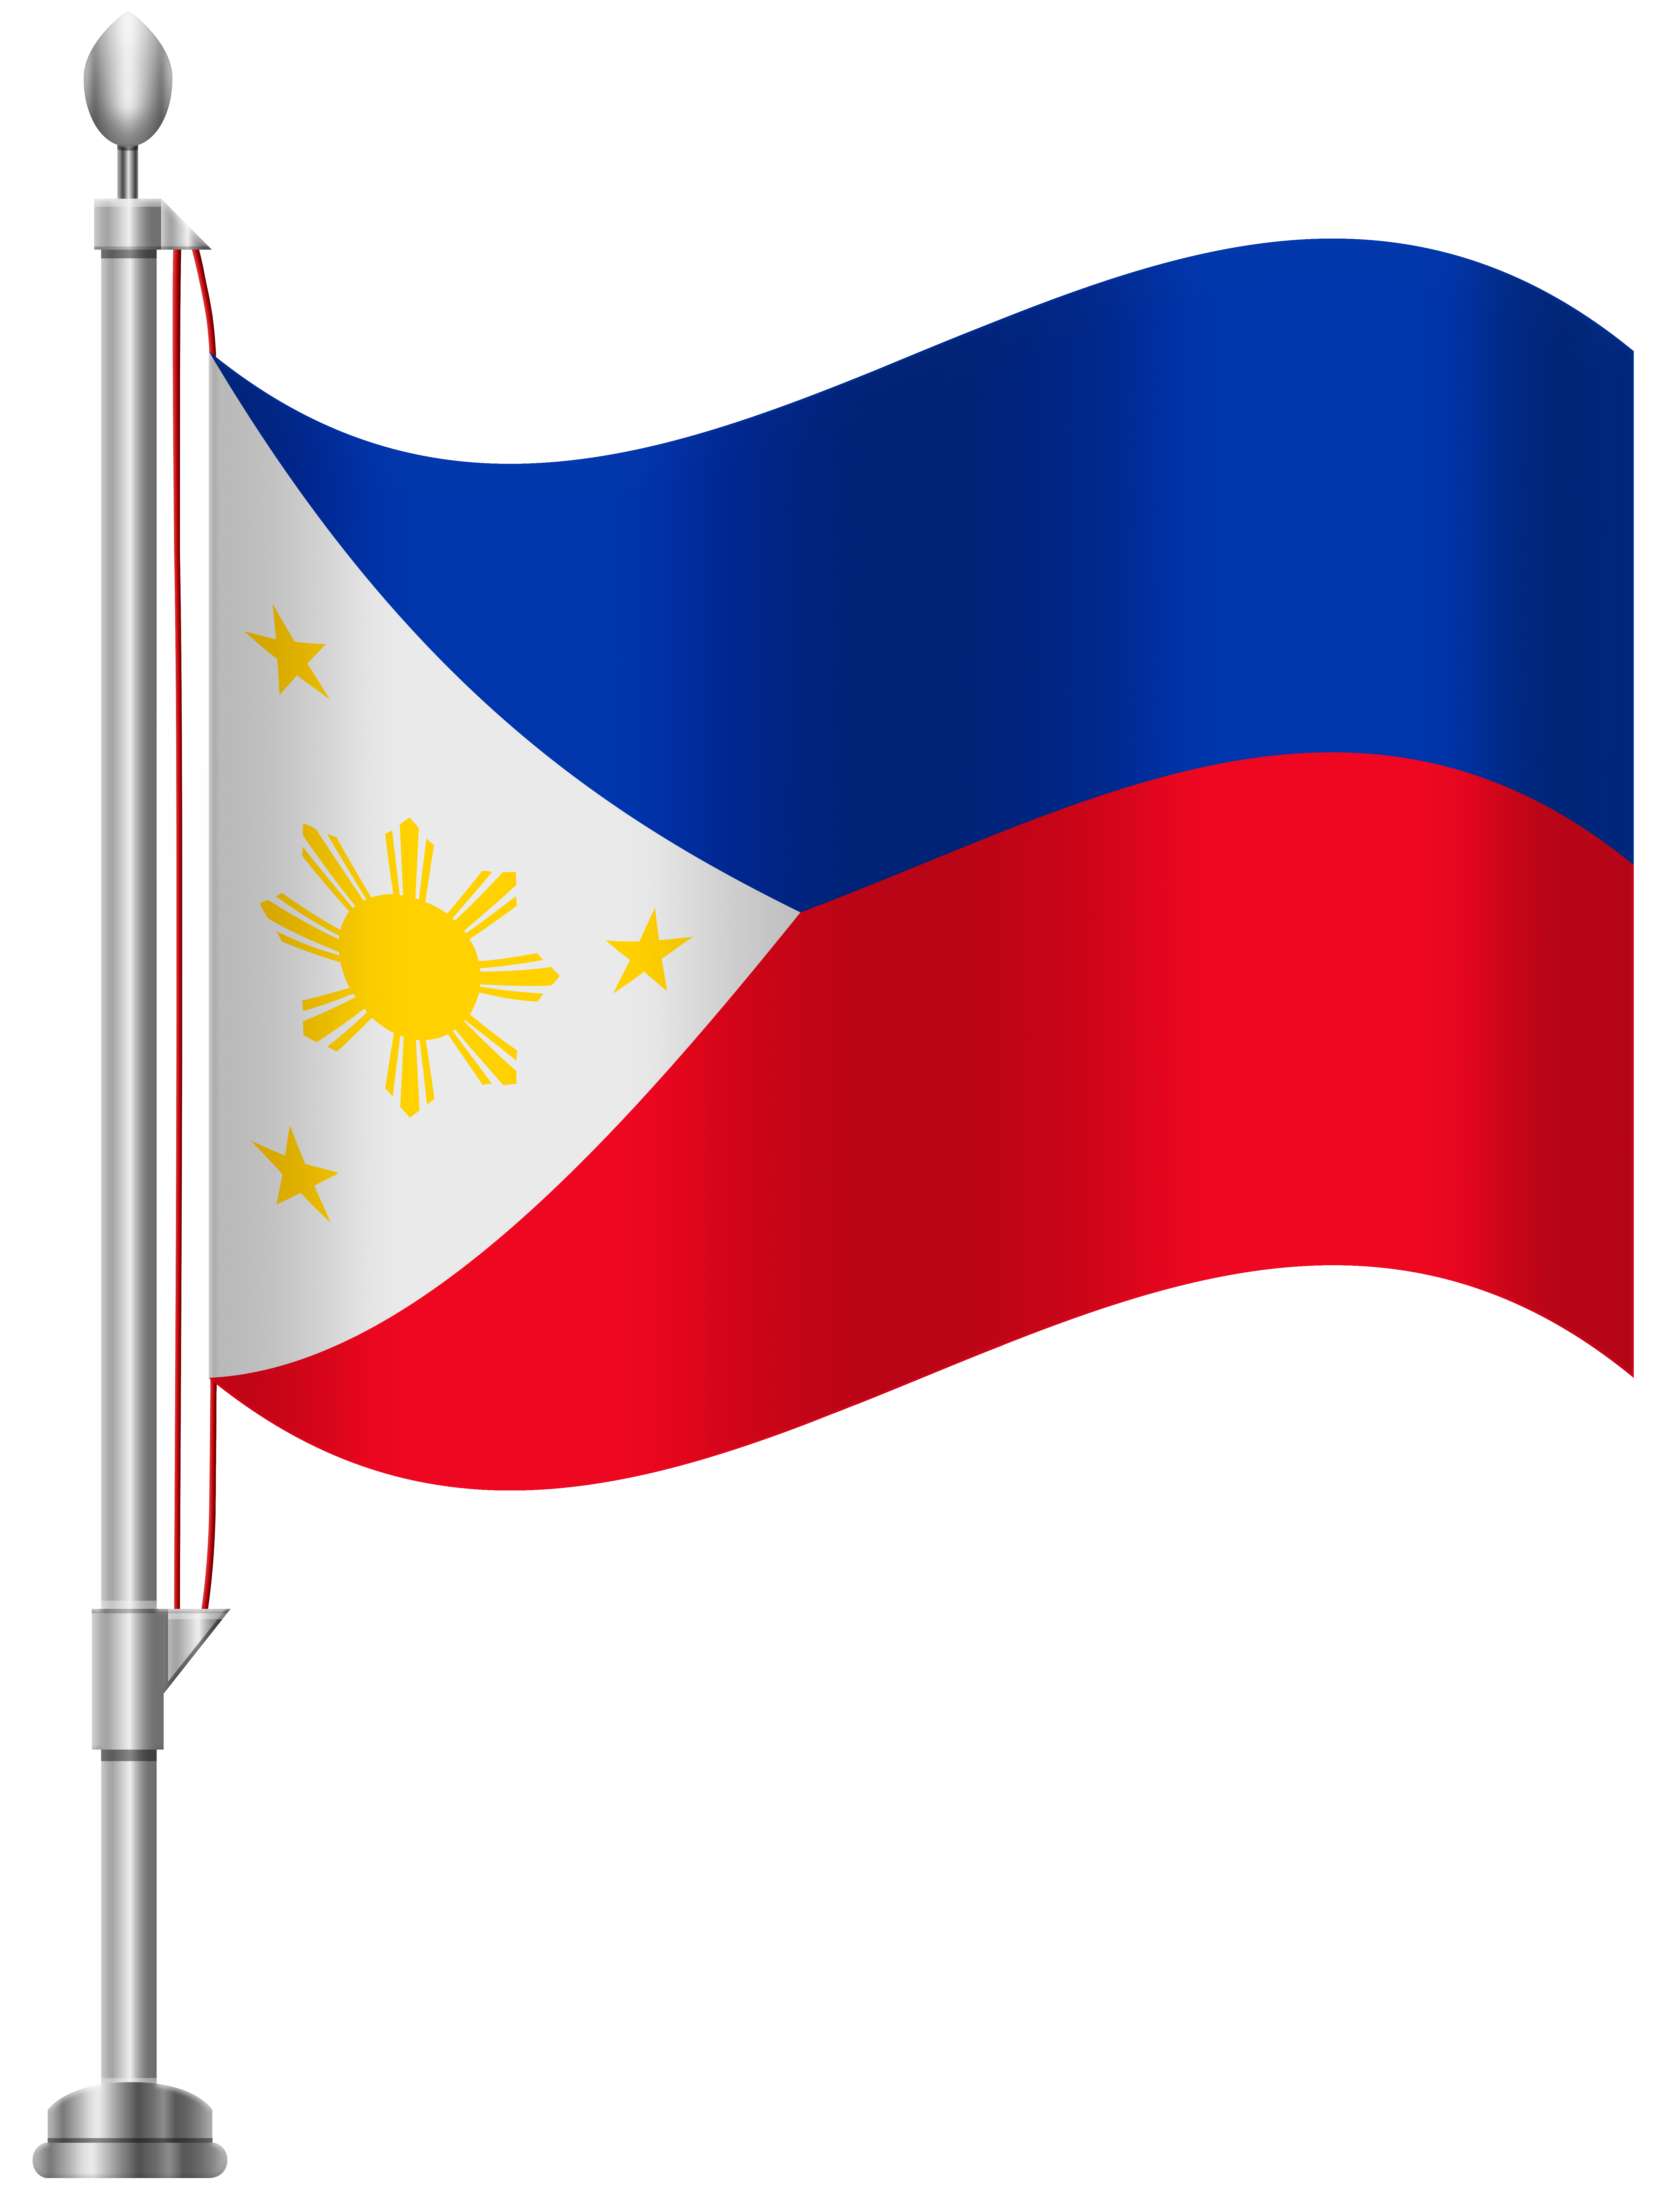 png royalty free library Philippines flag png clip. Flags clipart.